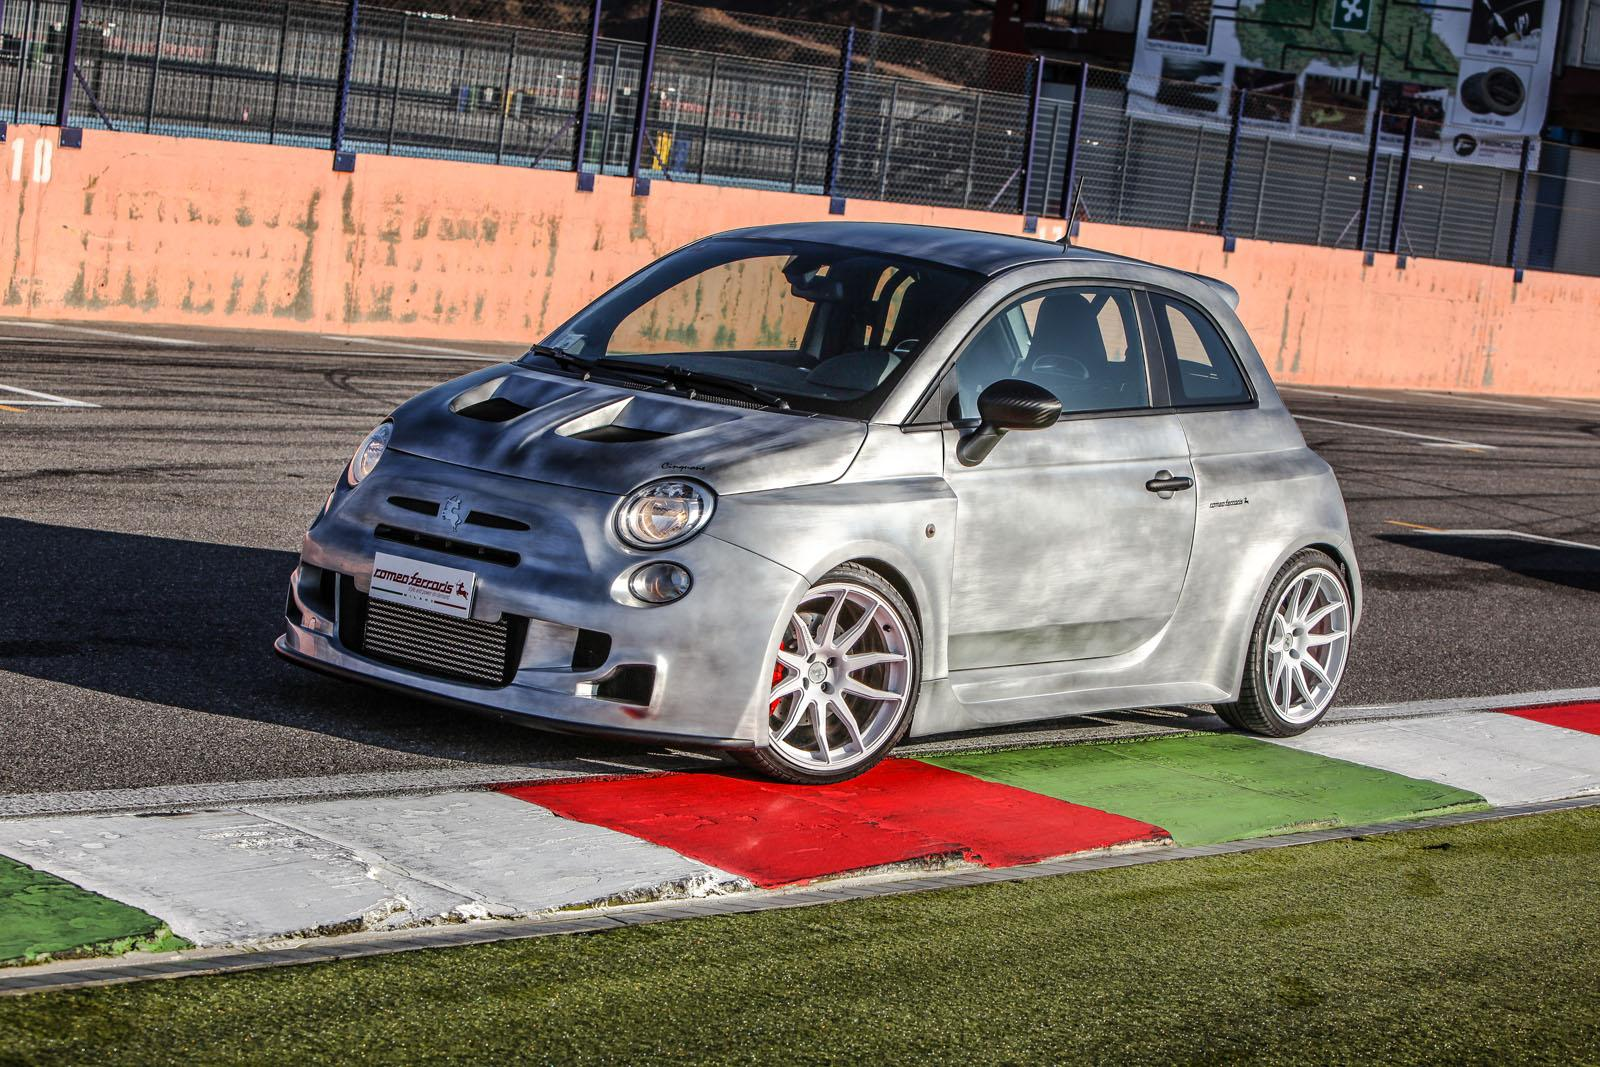 tuningcars 244 hp abarth 500 cinquone corsa by romeo ferraris is mighty impressive. Black Bedroom Furniture Sets. Home Design Ideas